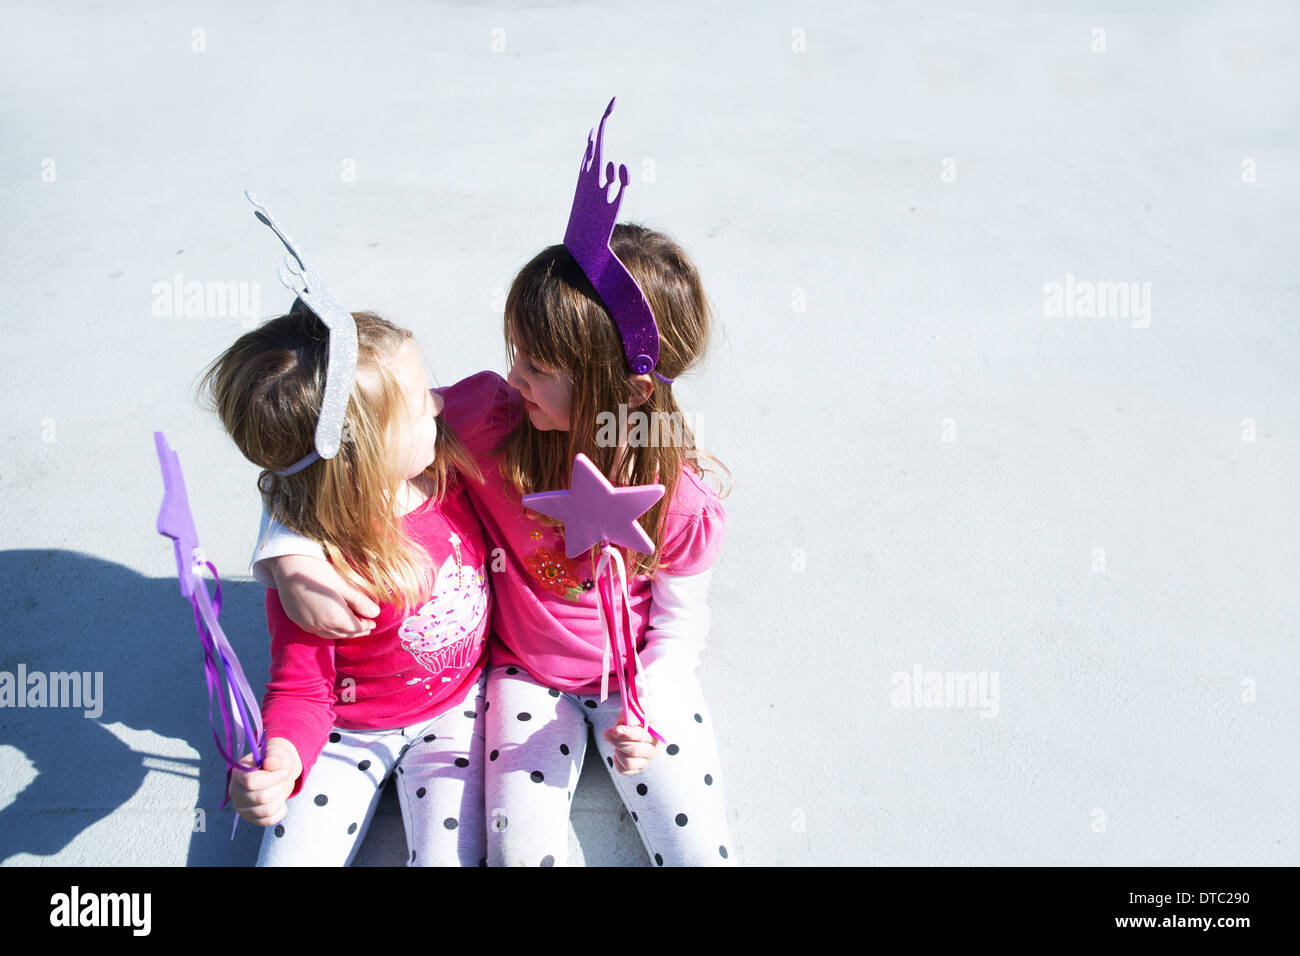 Two young sisters dressed up as fairies holding wands - Stock Image